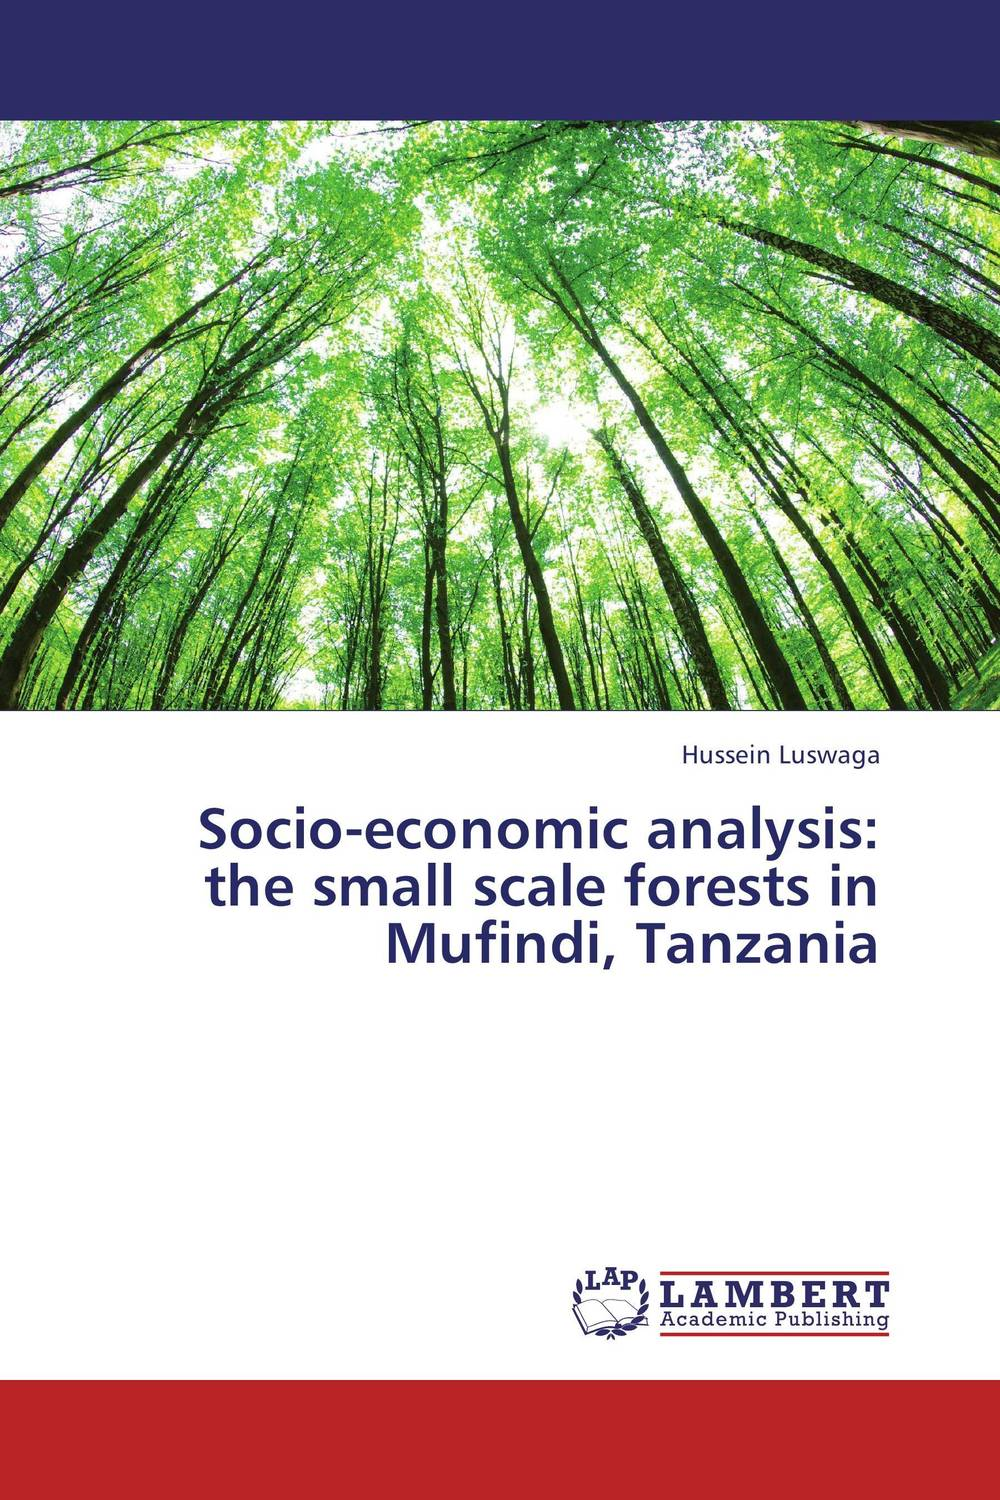 Socio-economic analysis: the small scale forests in Mufindi, Tanzania xuan liu time consistency of optimal policy in a small open economy